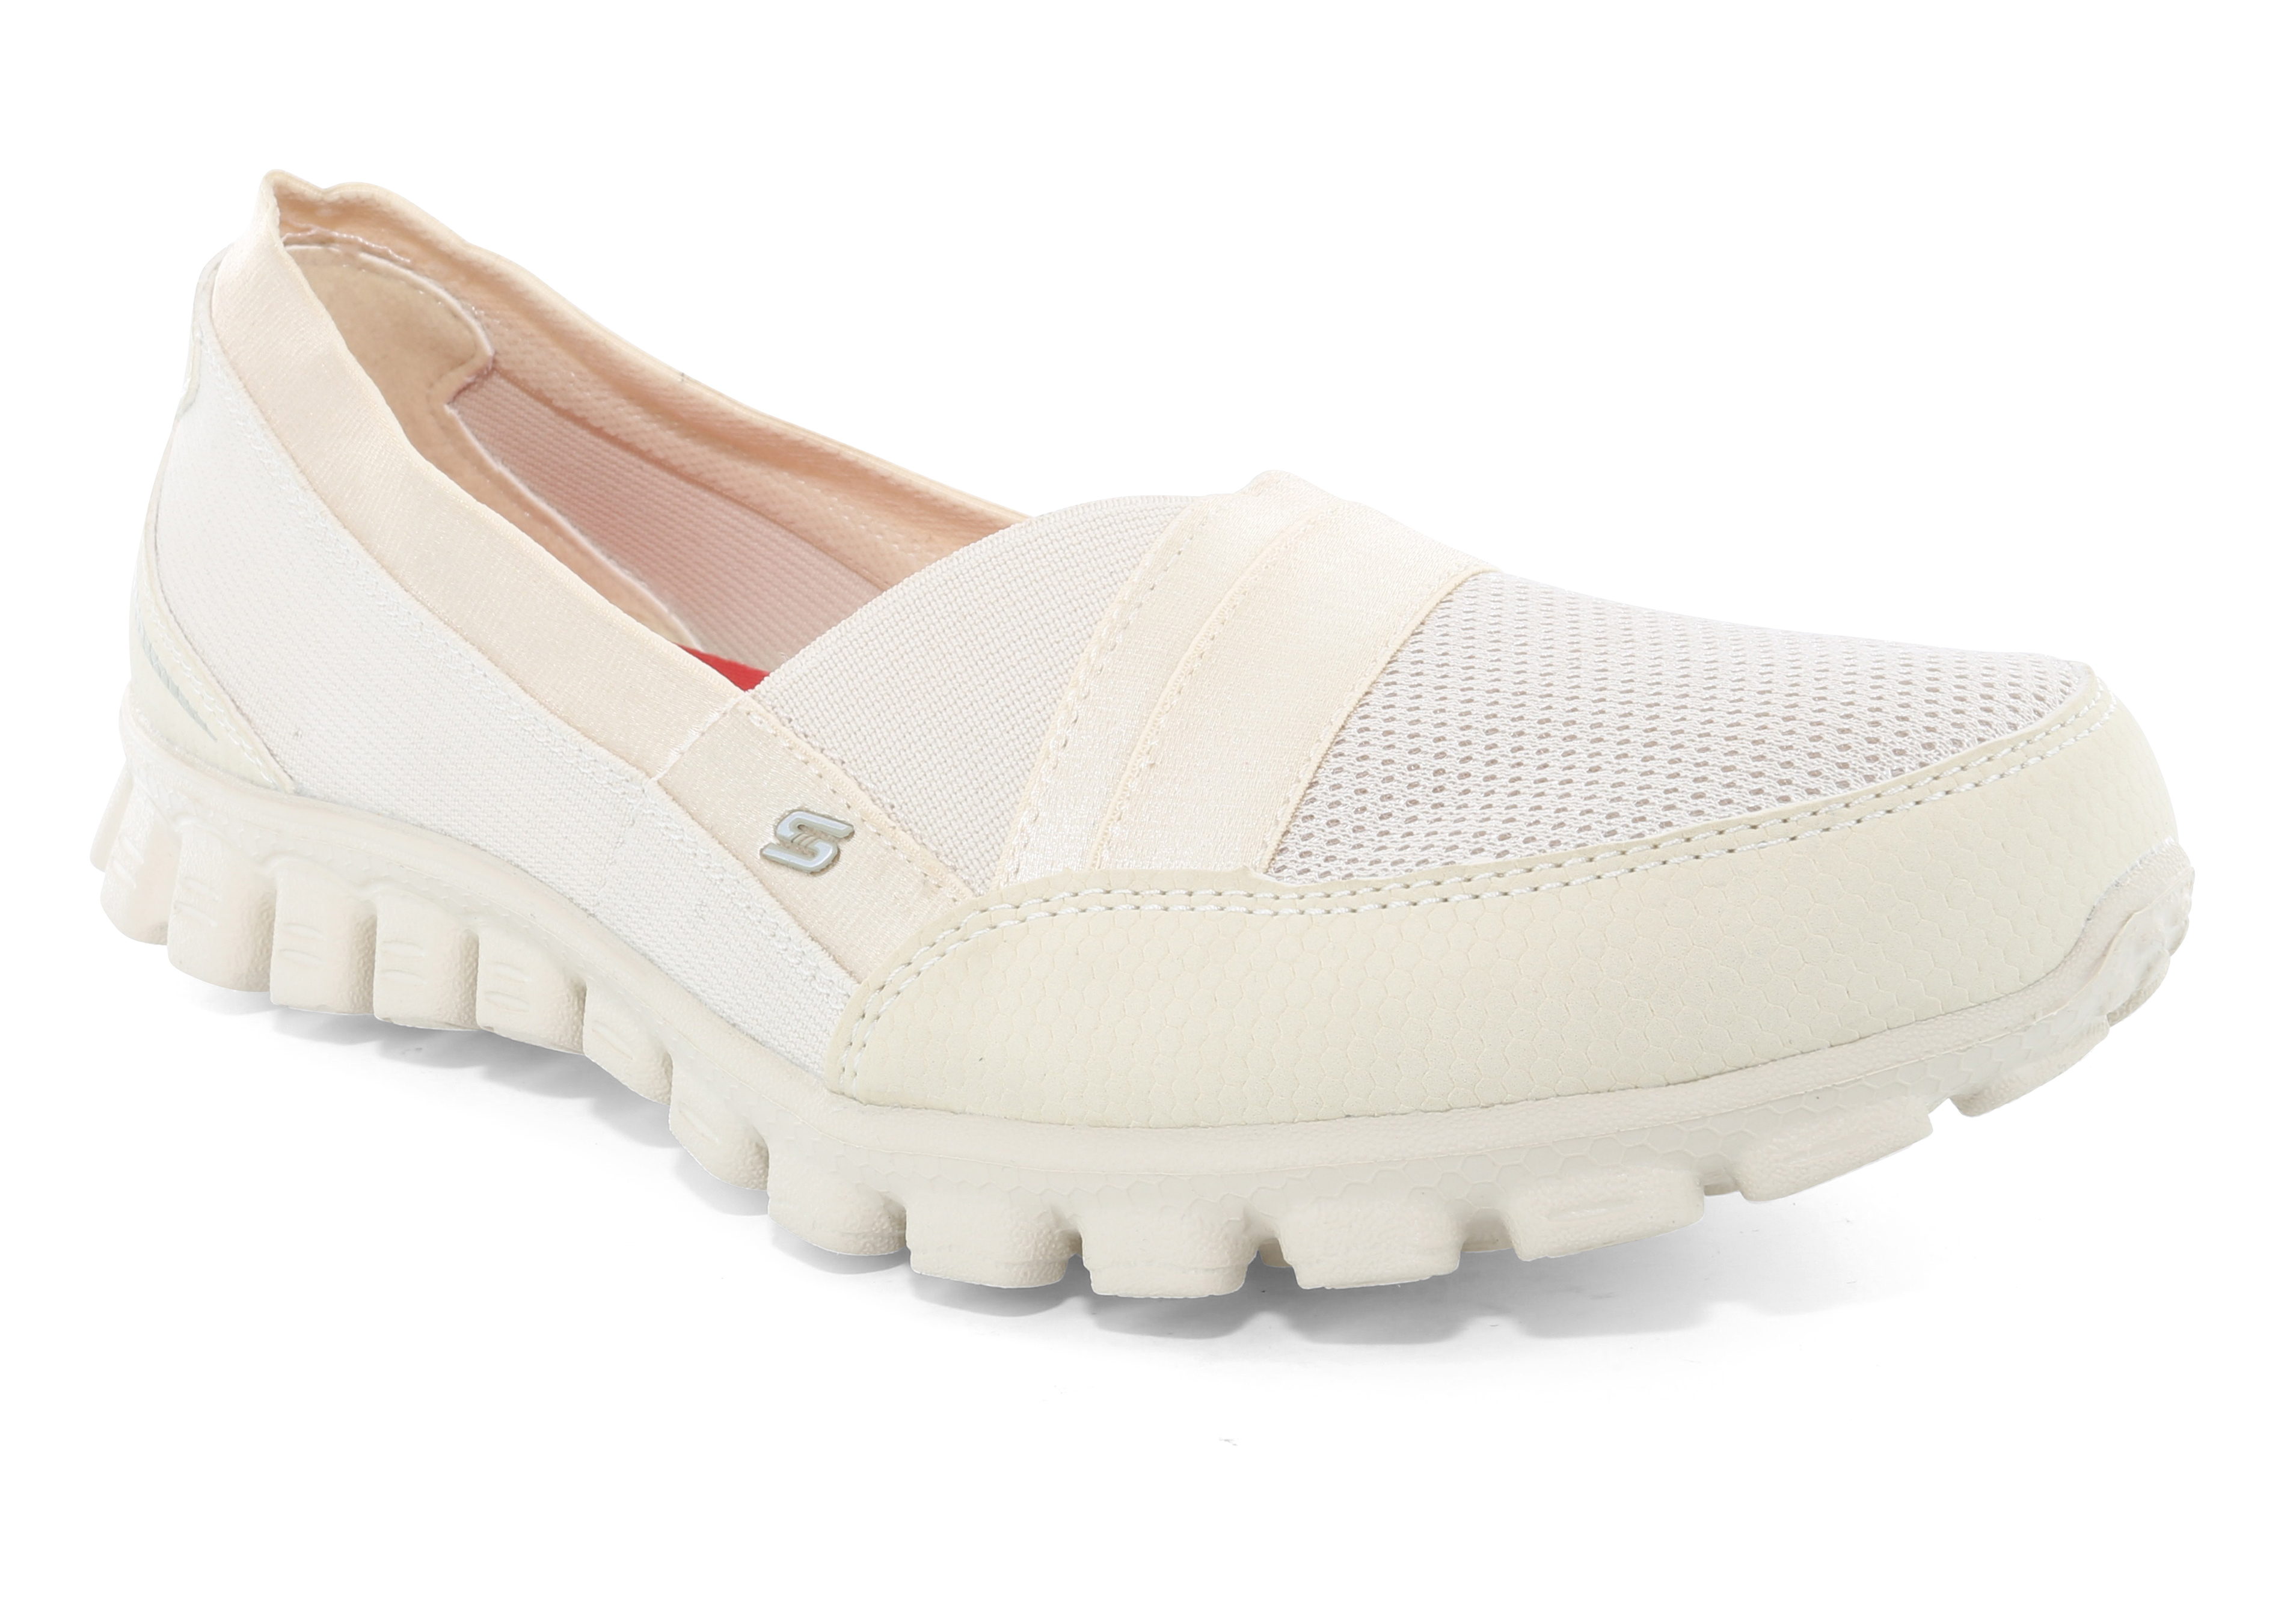 skechers active women's shoes